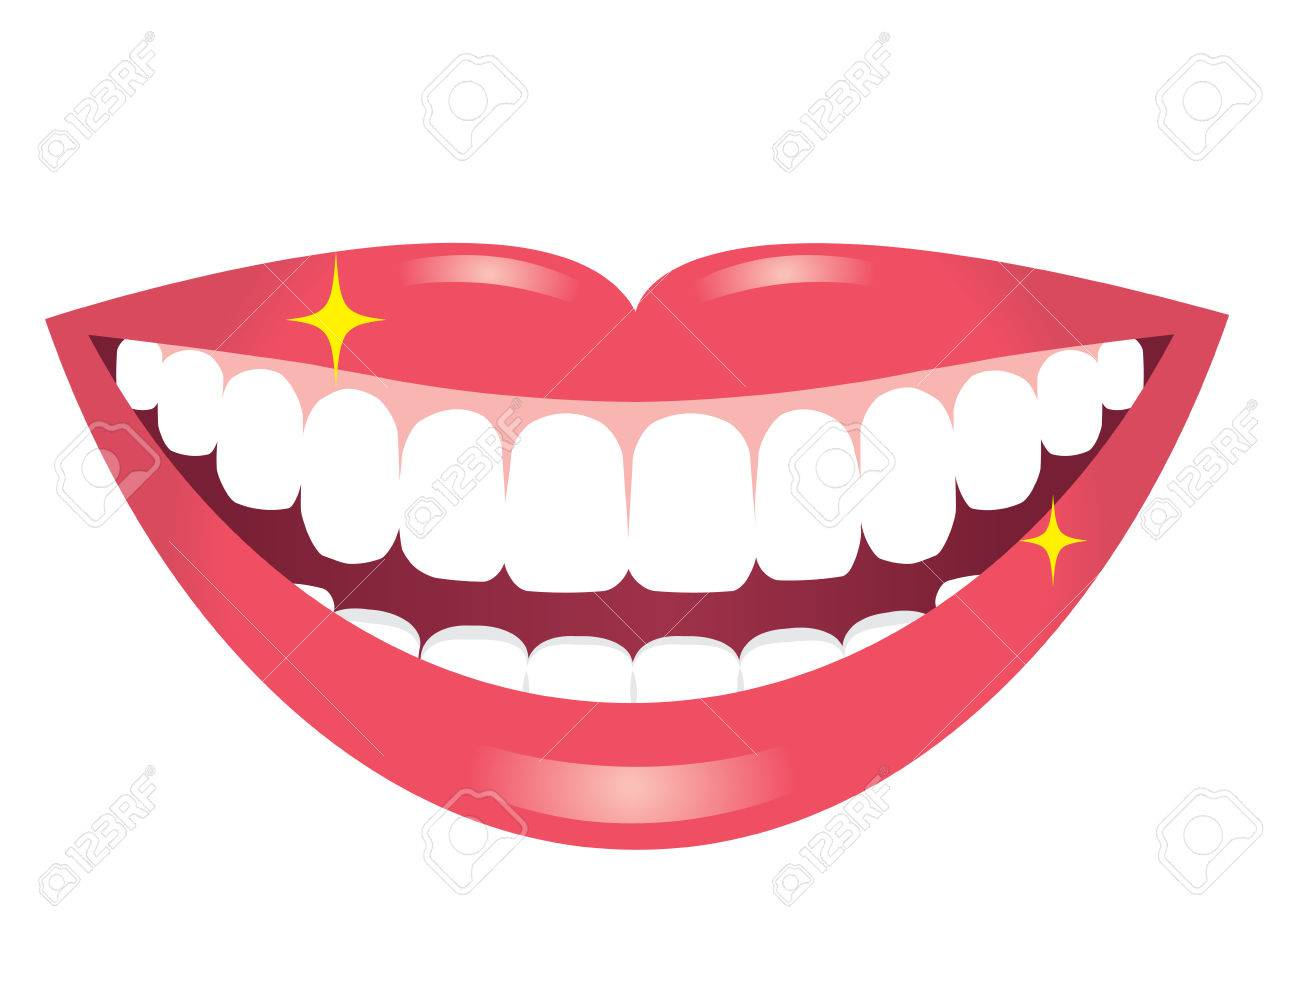 smiling mouth with white teeth royalty free cliparts vectors and rh 123rf com mouth with no teeth clipart Smiling Mouth Clip Art